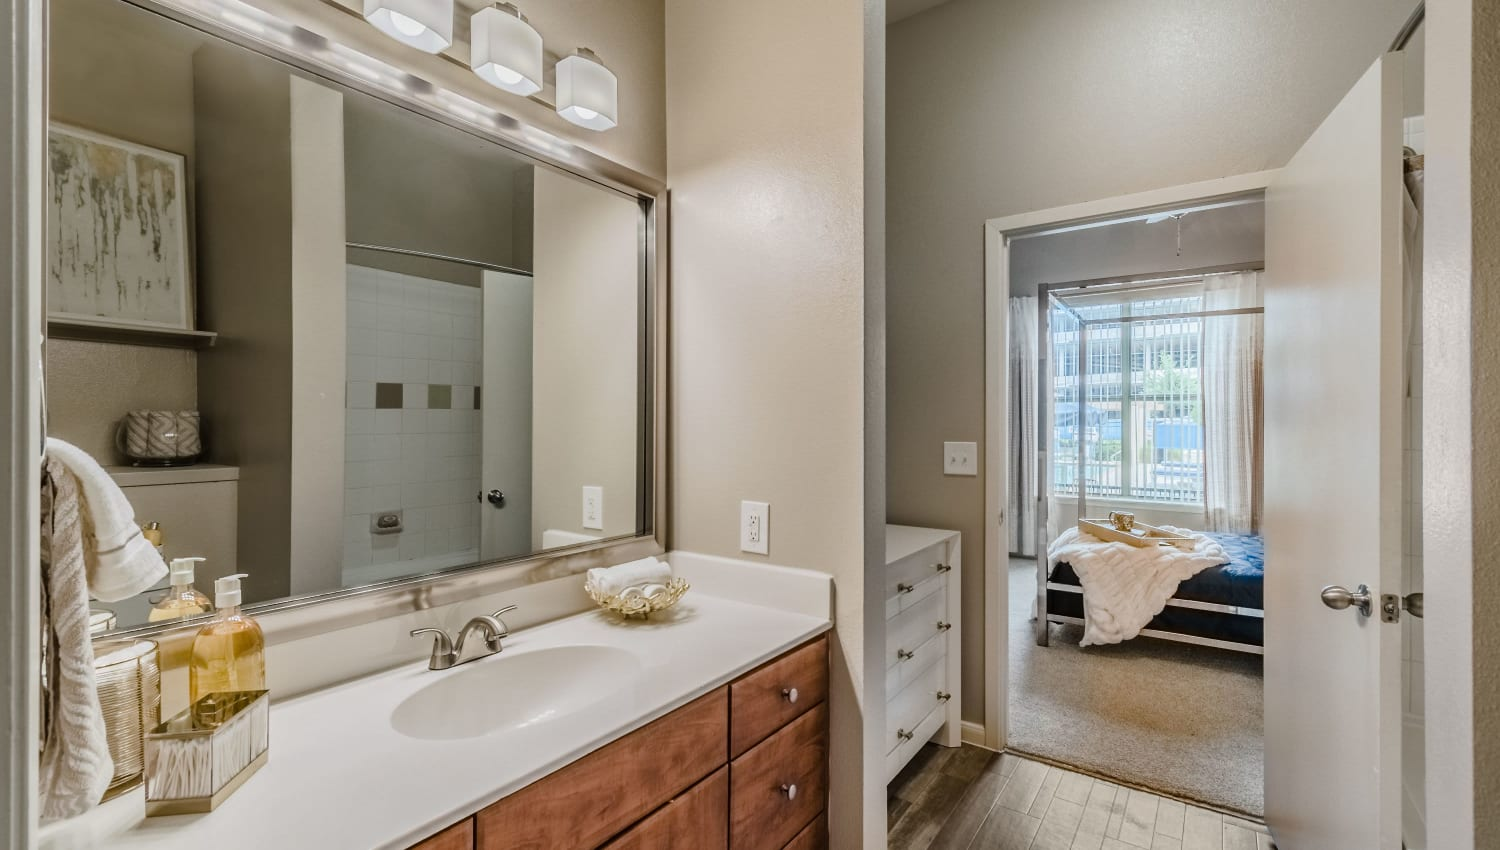 Spacious and elegant bathroom at Olympus Boulevard in Frisco, Texas